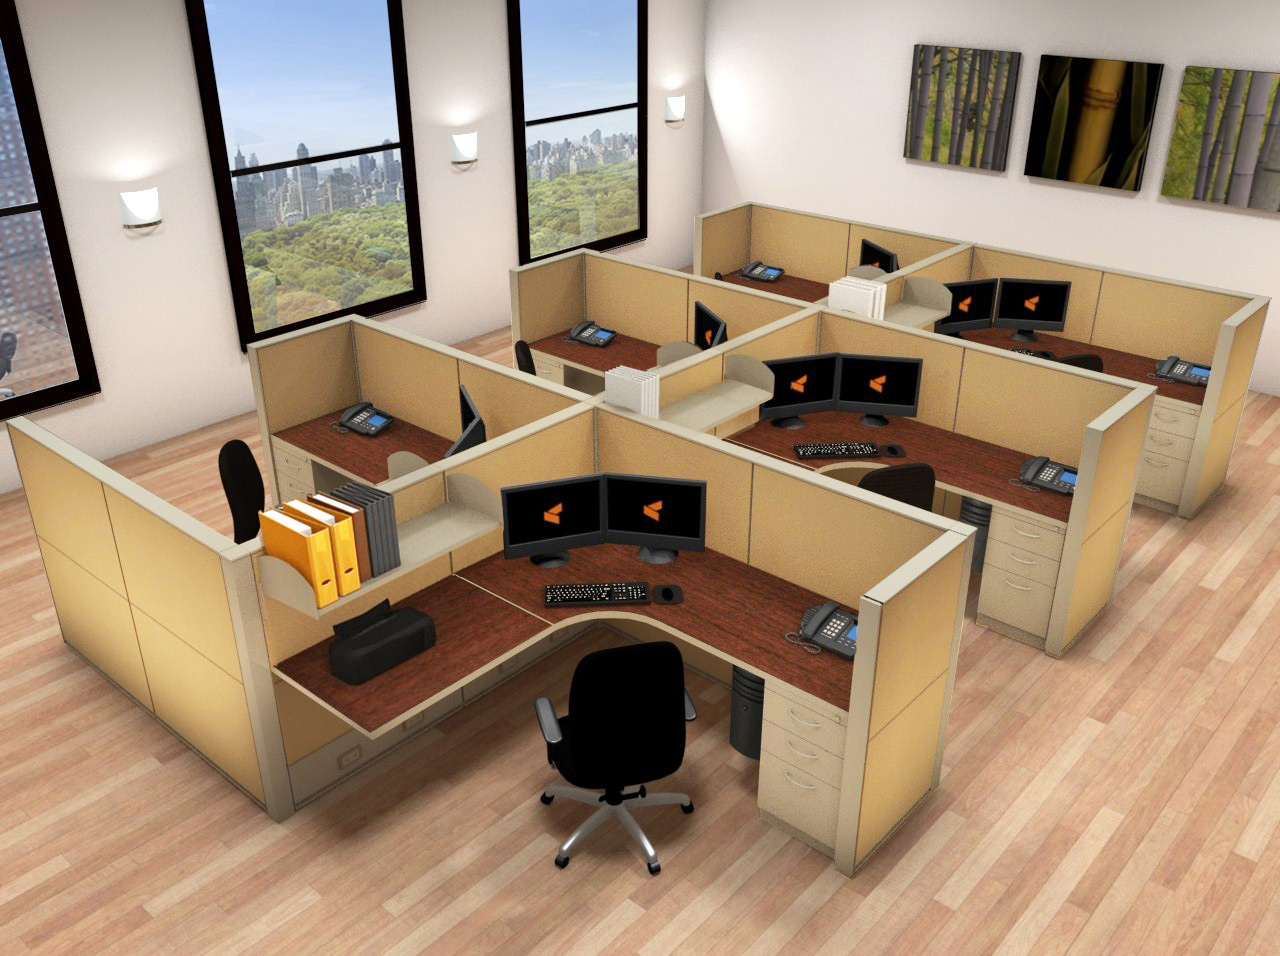 6x6 Cubicle Workstations From AIS   6 Pack Cluster